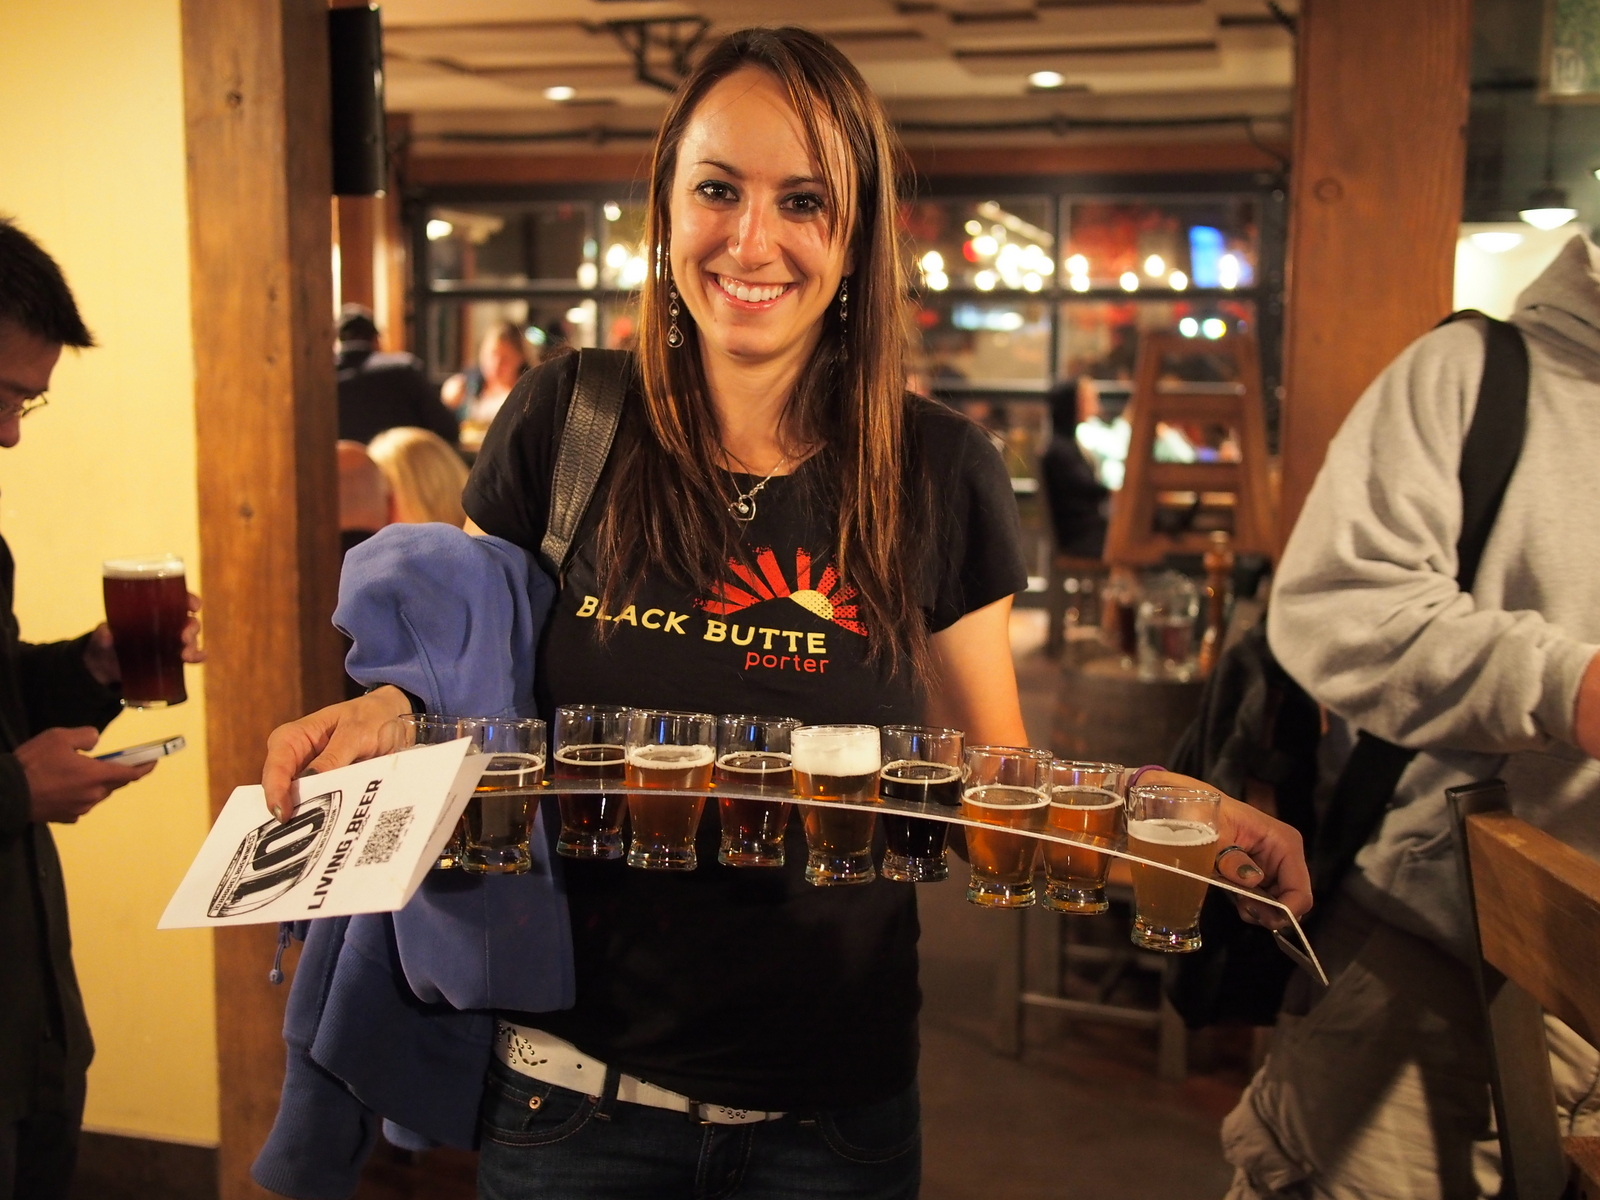 Sonya Looney with the Ten Barrel Brewing beer sampler